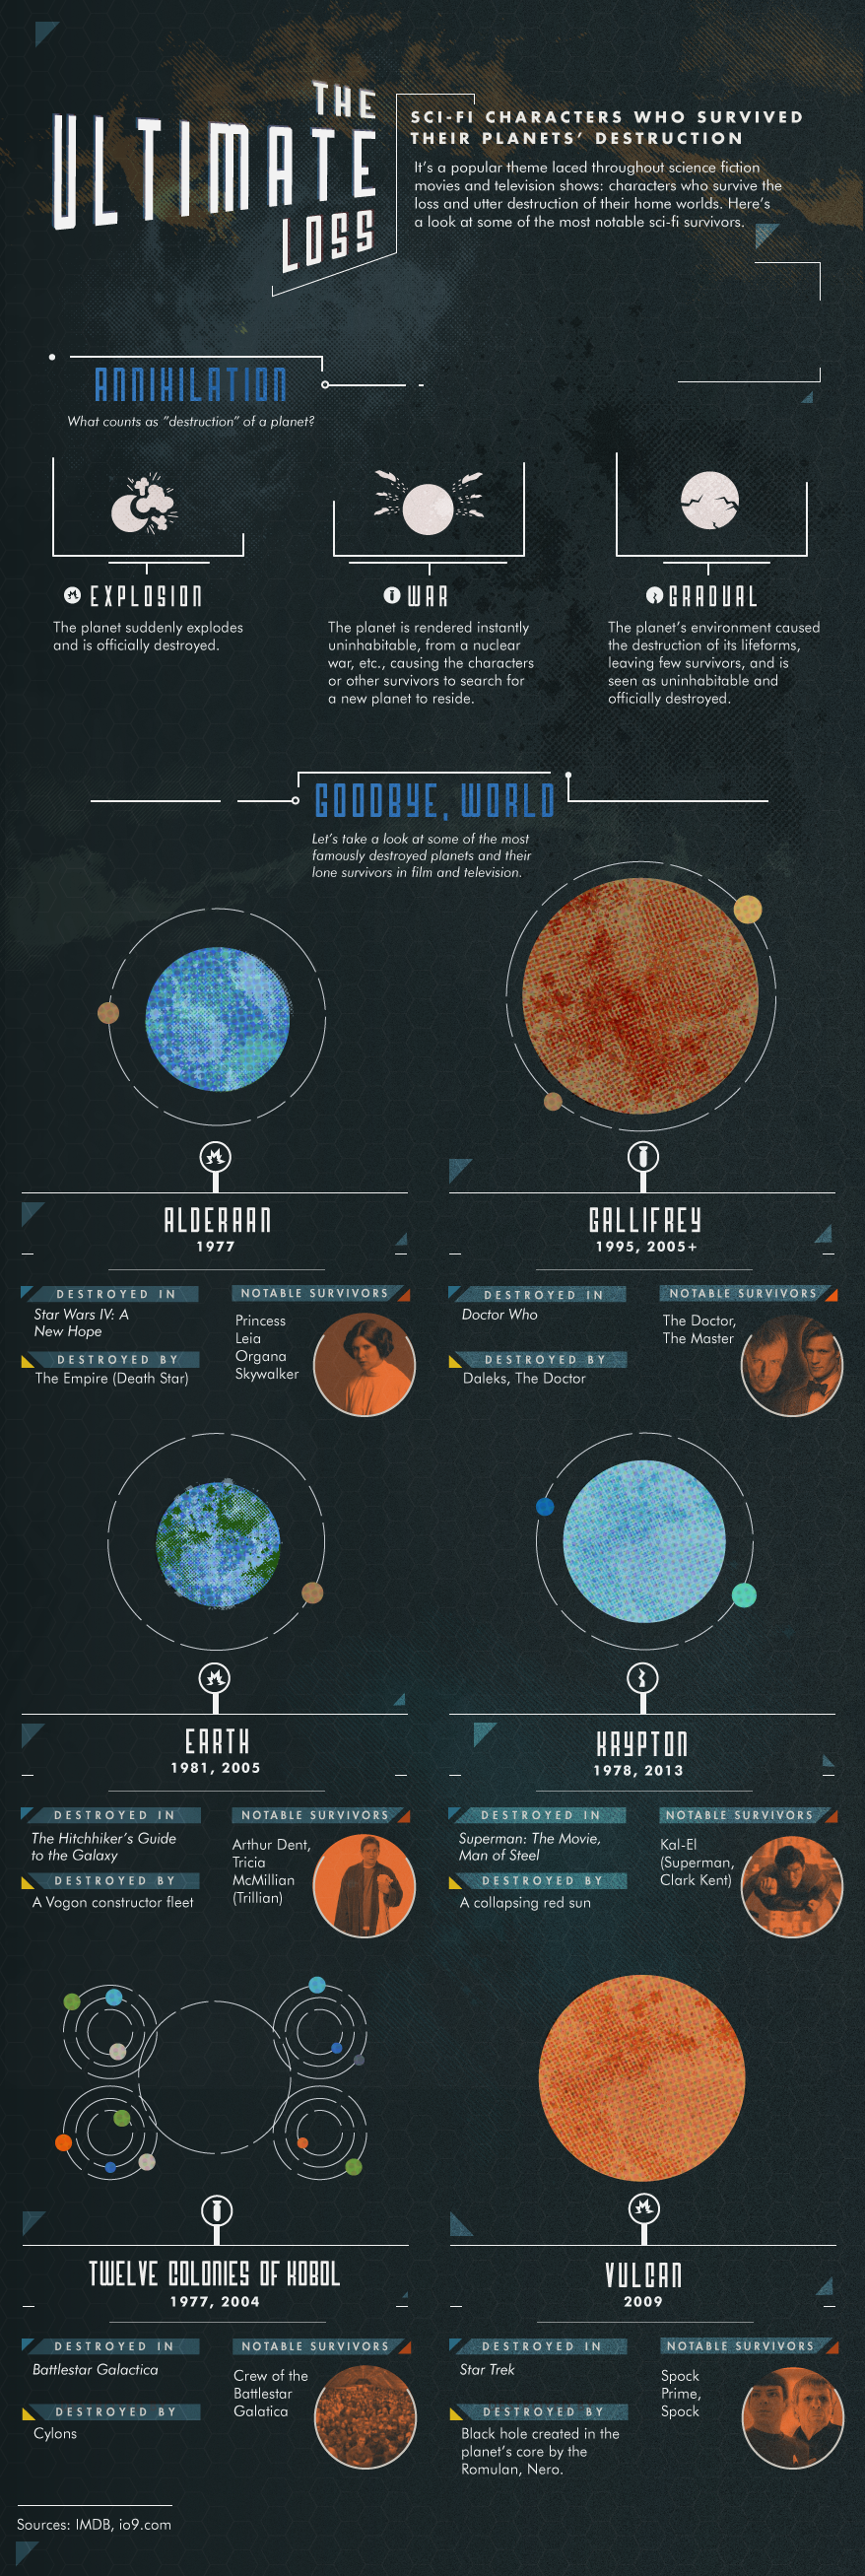 the-ultimate-loss-planets-destroyed[1]